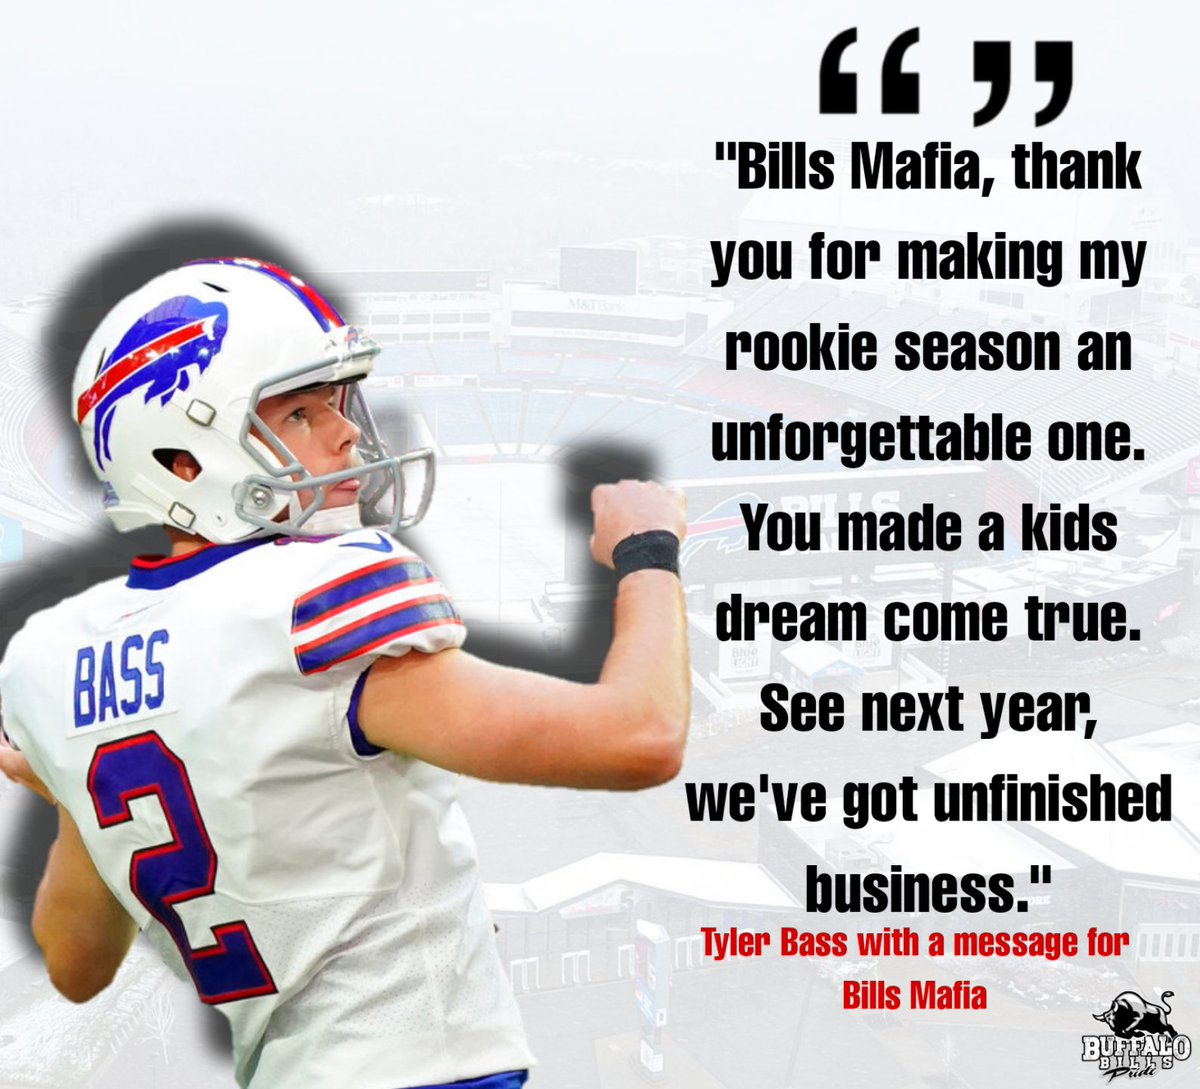 Tyler Bass with a message for #Billsmafia. ❤️💙  #BuffaloBills #BuffaloLove #BuffaloBillsPride #TylerBass